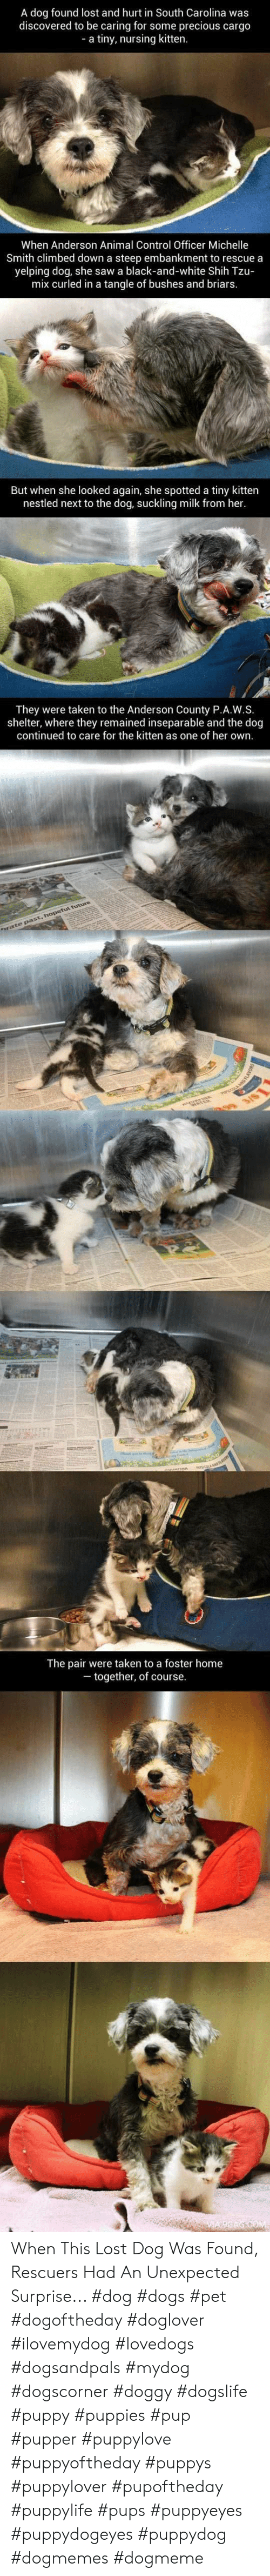 9gag, Dogs, and Future: A dog found lost and hurt in South Carolina was  discovered to be caring for some precious cargo  a tiny, nursing kitten.  When Anderson Animal Control Officer Michelle  Smith climbed down a steep embankment to rescue a  yelping dog, she saw a black-and-white Shih Tzu-  mix curled in a tangle of bushes and briars.  But when she looked again, she spotted a tiny kitten  nestled next to the dog, suckling milk from her  They were taken to the Anderson County P.A.W.S.  shelter, where they remained inseparable and the dog  continued to care for the kitten as one of her own.  arate past, hopeful future  3/S  The pair were taken to a foster home  together, of course.  -  9GAG.COM When This Lost Dog Was Found, Rescuers Had An Unexpected Surprise...  #dog #dogs #pet #dogoftheday #doglover #ilovemydog #lovedogs #dogsandpals #mydog #dogscorner #doggy #dogslife #puppy #puppies #pup #pupper #puppylove #puppyoftheday #puppys #puppylover #pupoftheday #puppylife #pups #puppyeyes #puppydogeyes #puppydog #dogmemes #dogmeme